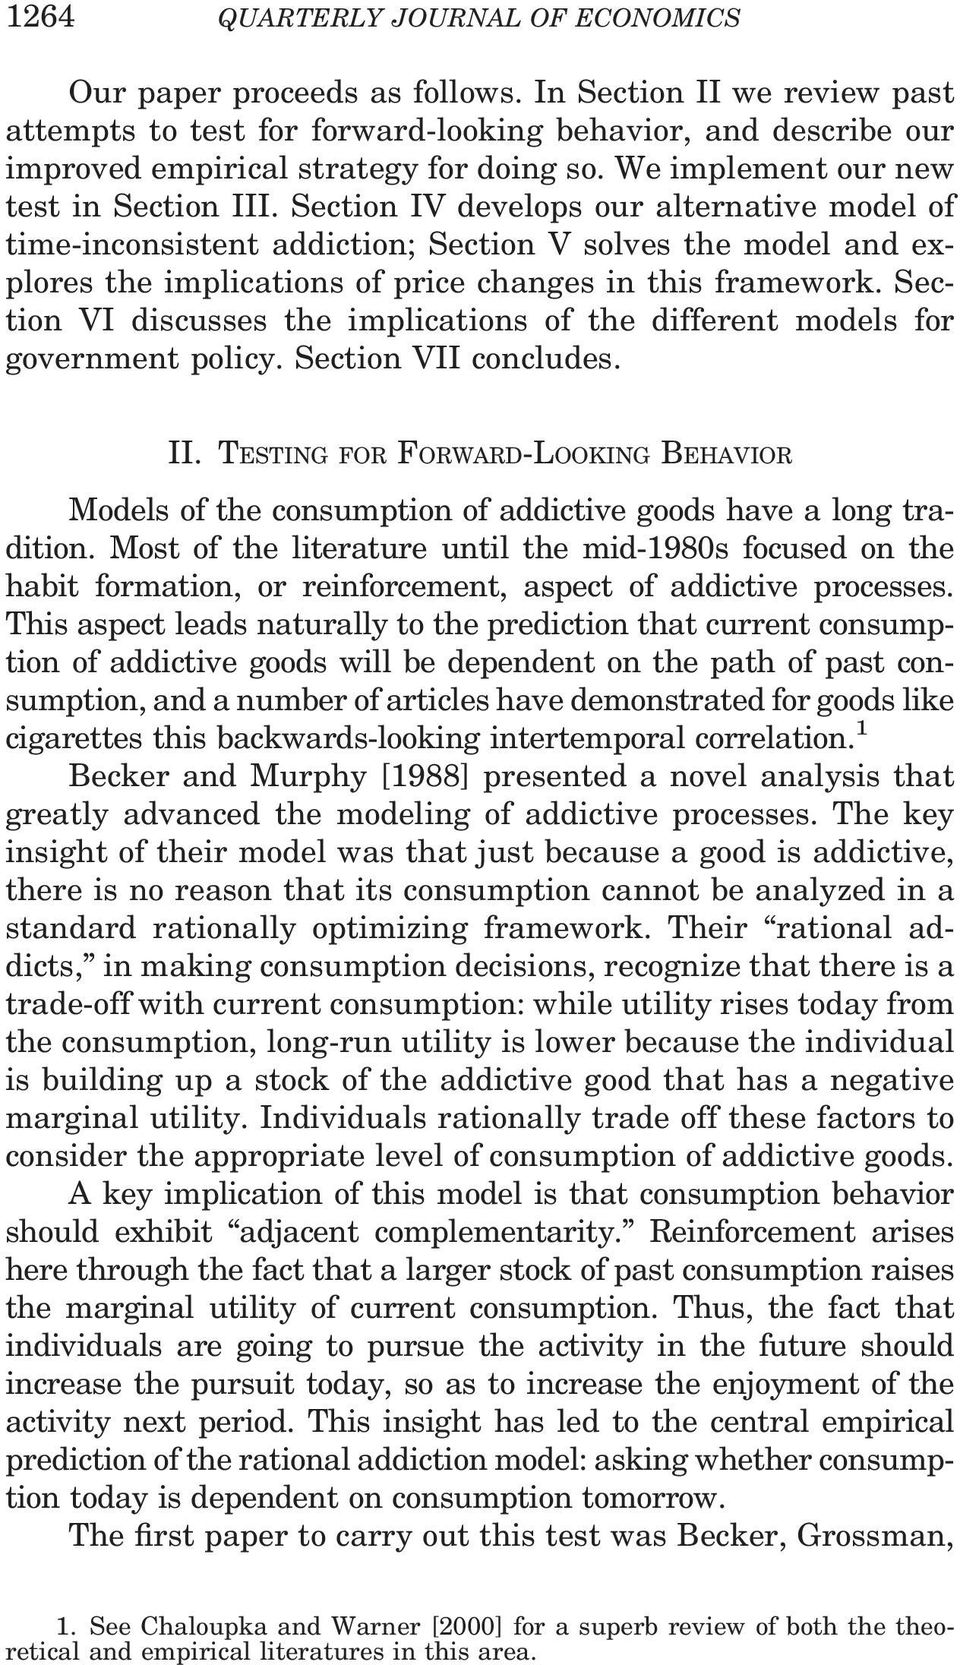 Section IV develops our alternative model of time-inconsistent addiction; Section V solves the model and explores the implications of price changes in this framework.